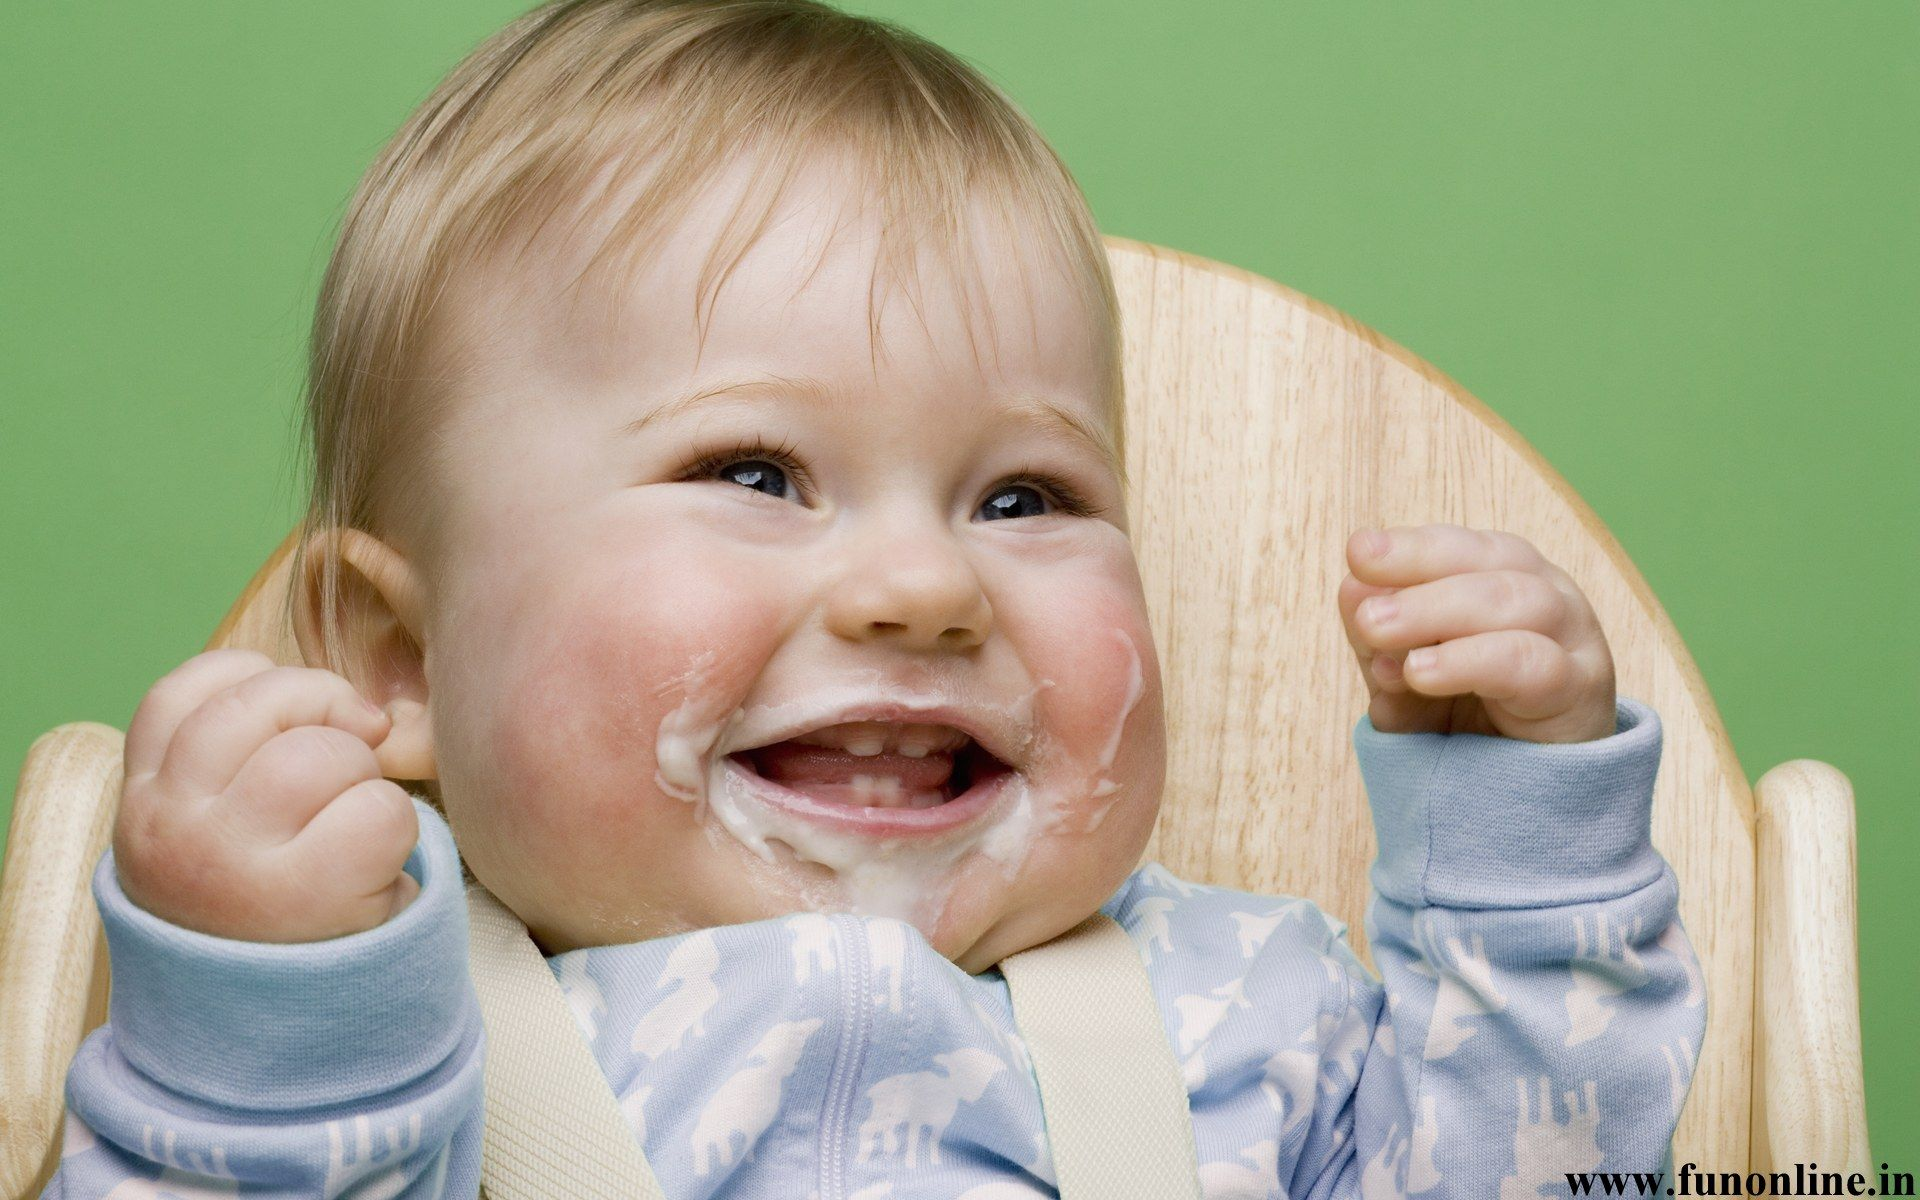 Cute Baby Pics Wallpapers 64 Images: Funny Pics Of Babies For Facebook Hd Images 3 HD